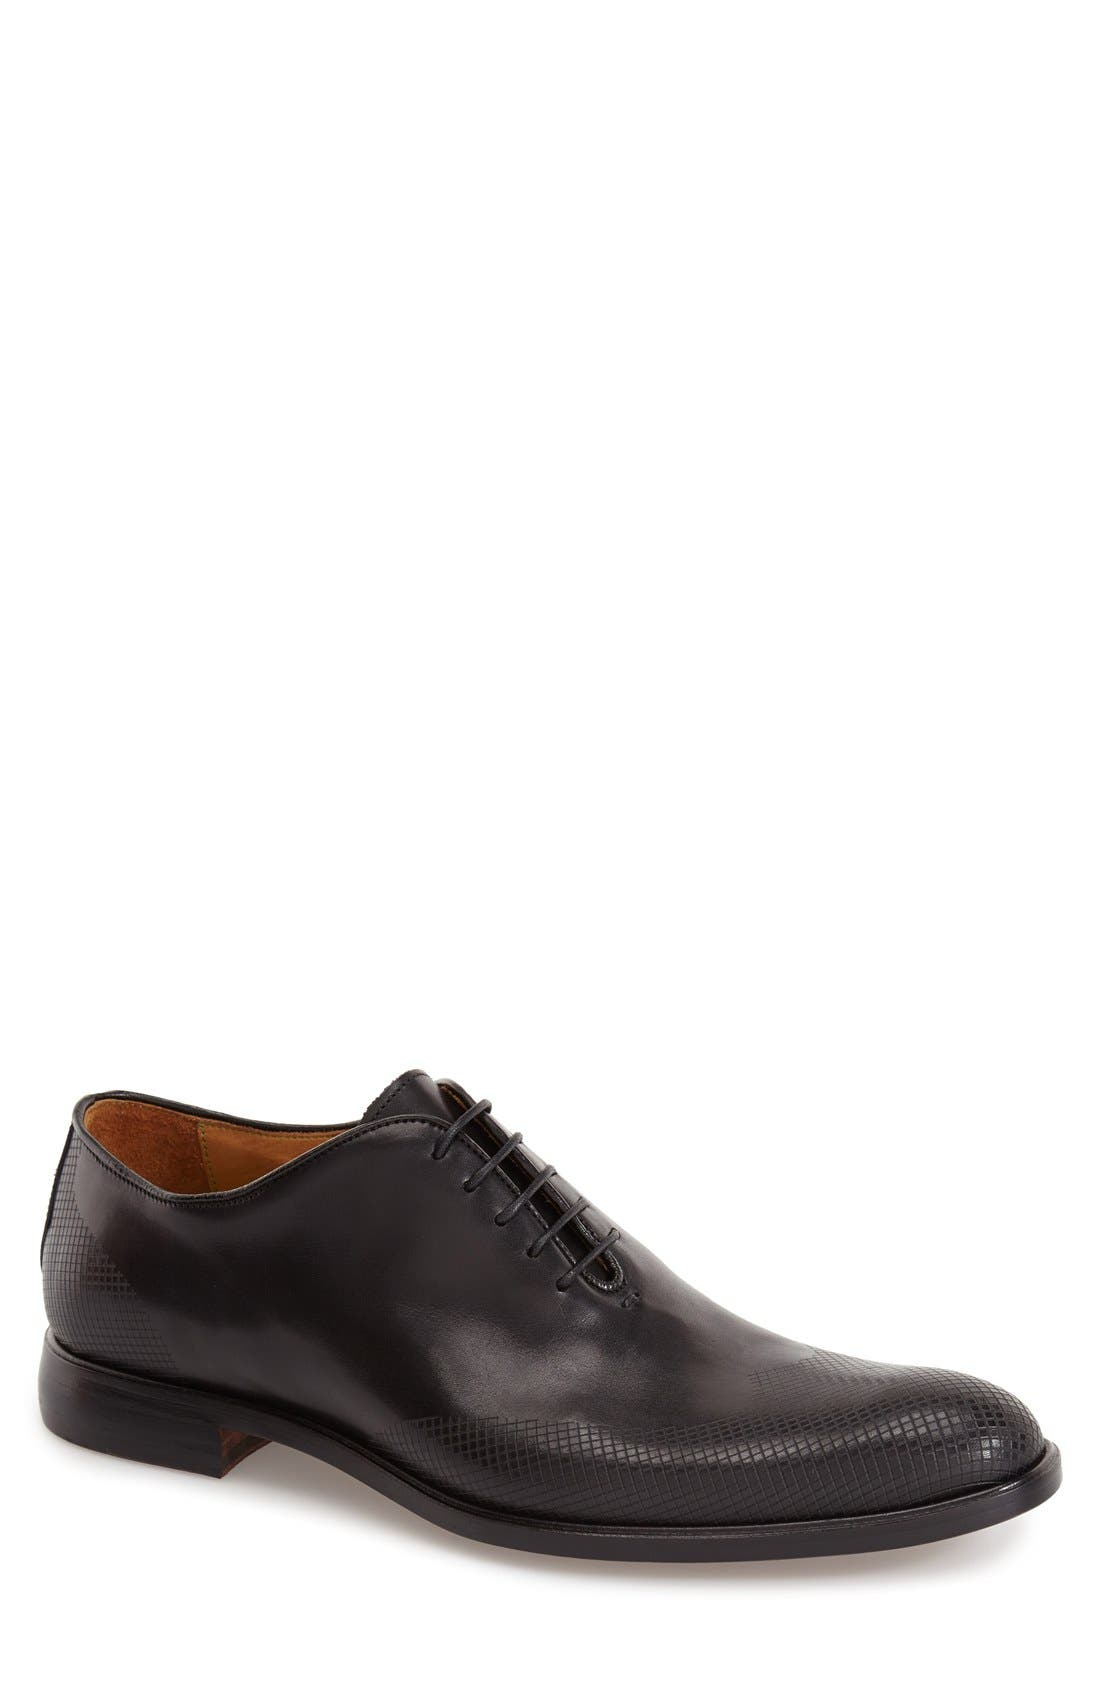 'Colladera' Wholecut Wingtip, Main, color, 001